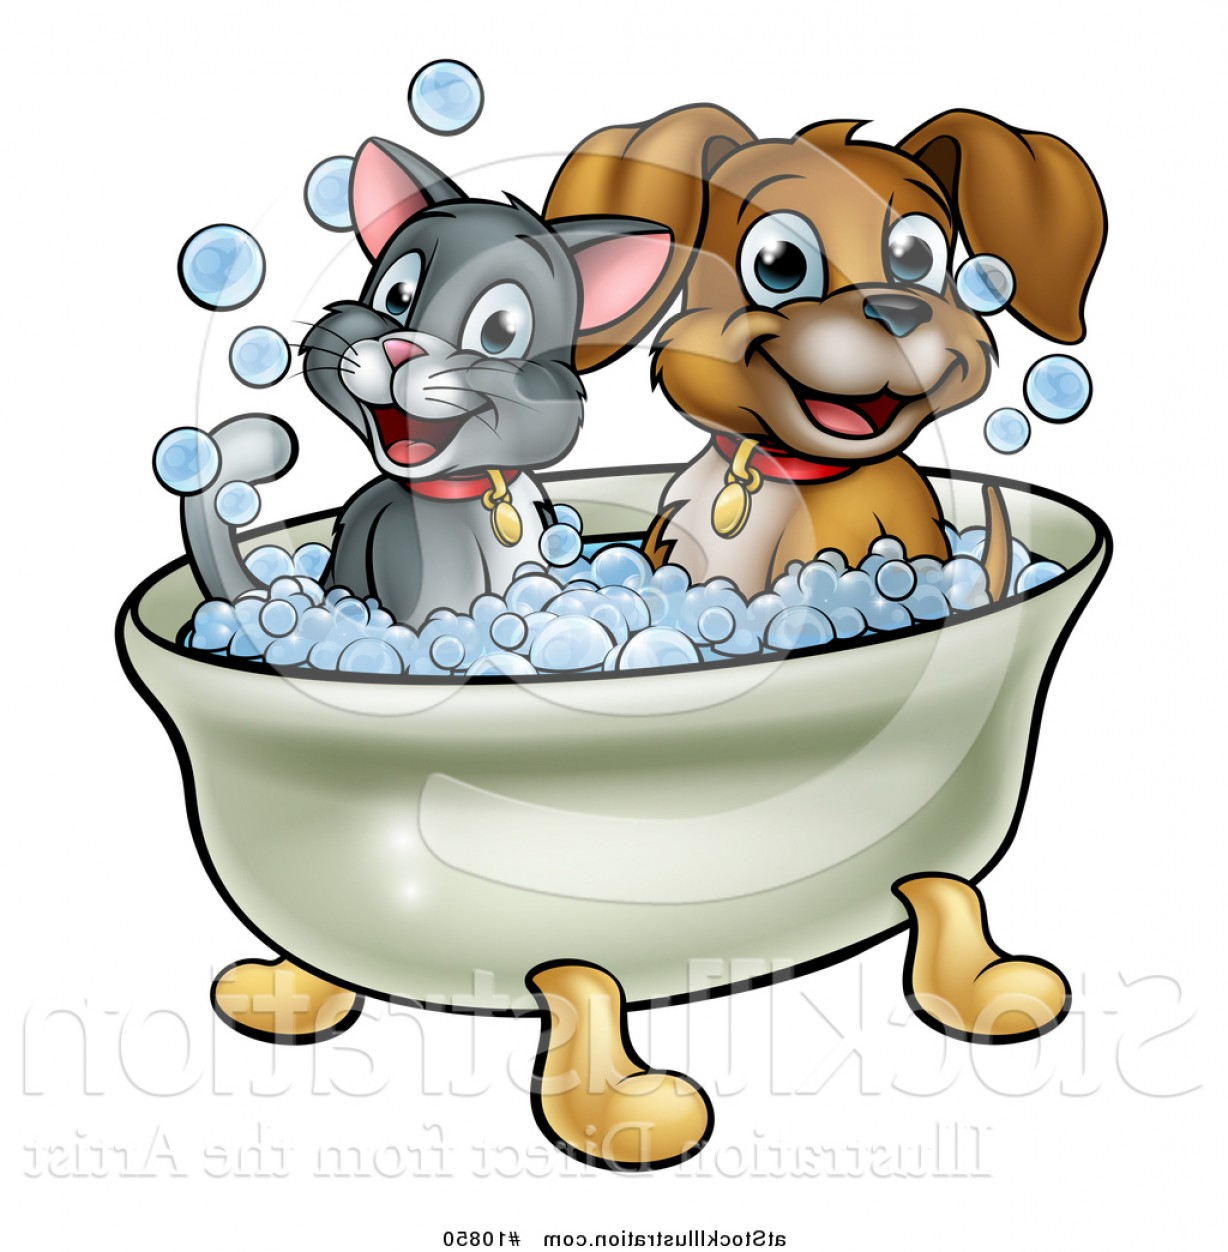 Dog Bubble Bath Vector: Fanciful Vector Illustration Of A Cartoon Happy Puppy Dog And Cat Soaking In A Bubble Bath By Atstockillustration